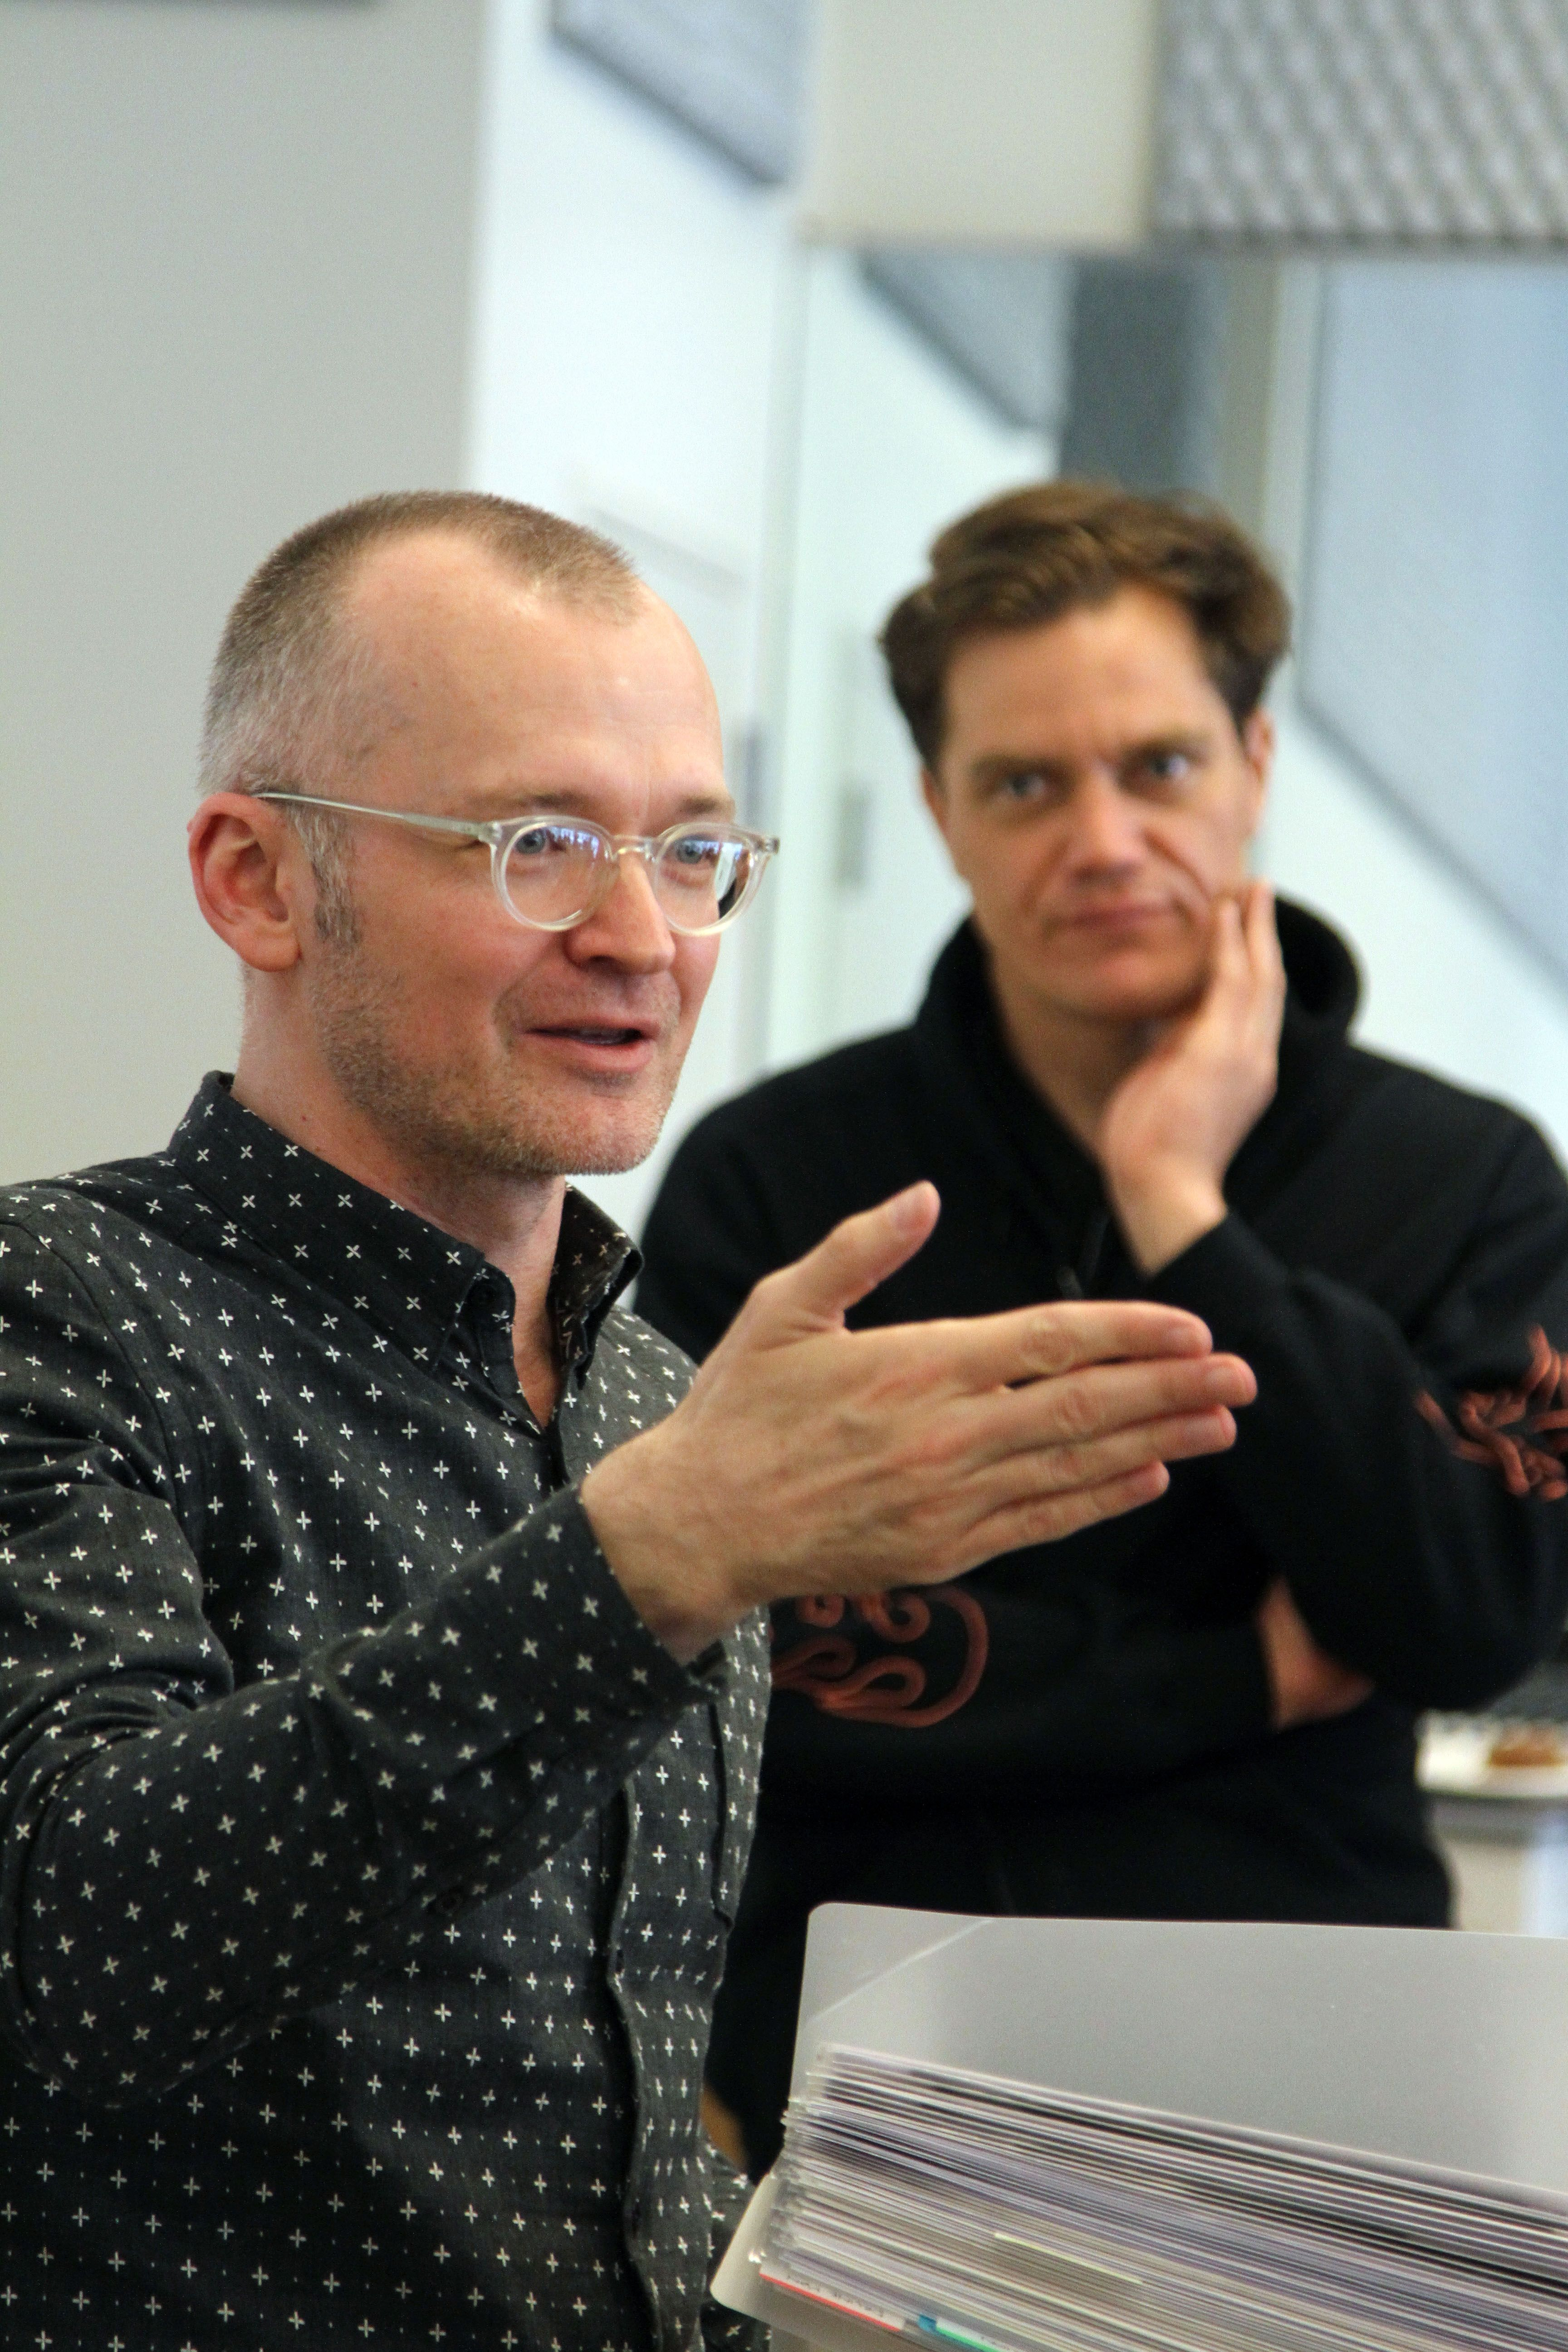 Director Darko Tresnjak (foreground) and Michael Shannon in